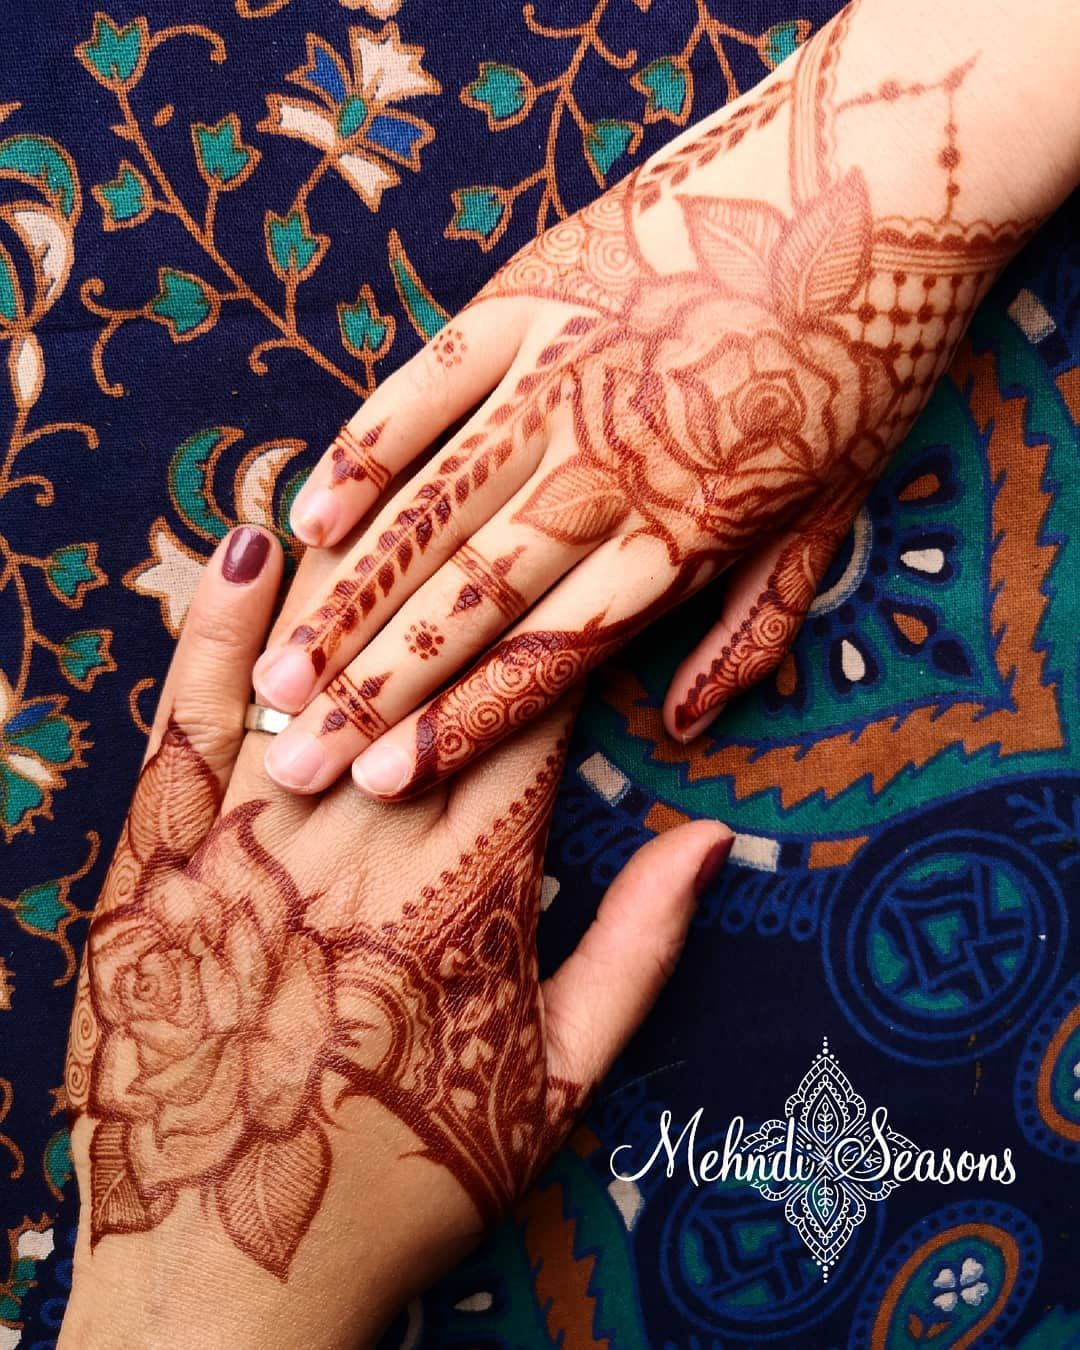 Image May Contain One Or More People And Closeup Rose Mehndi Designs Henna Designs Hand Back Hand Mehndi Designs